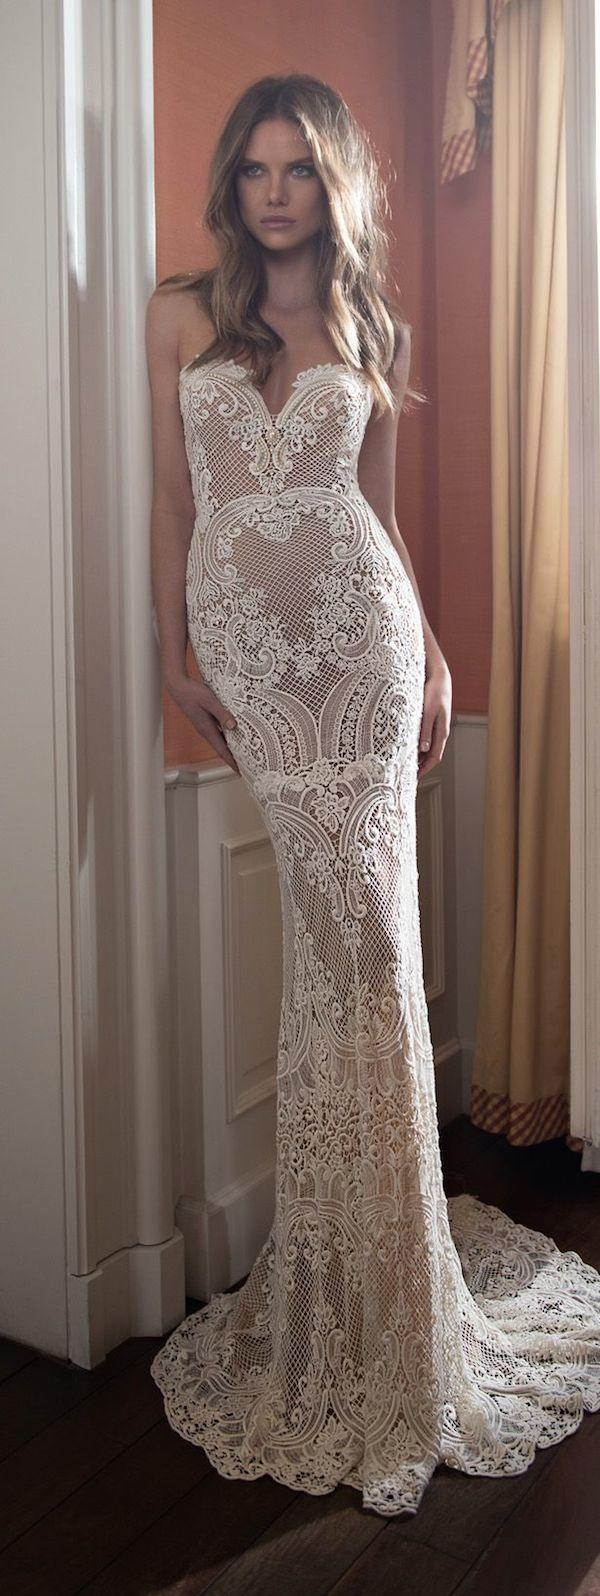 lace-wedding-dress-12-082615ch